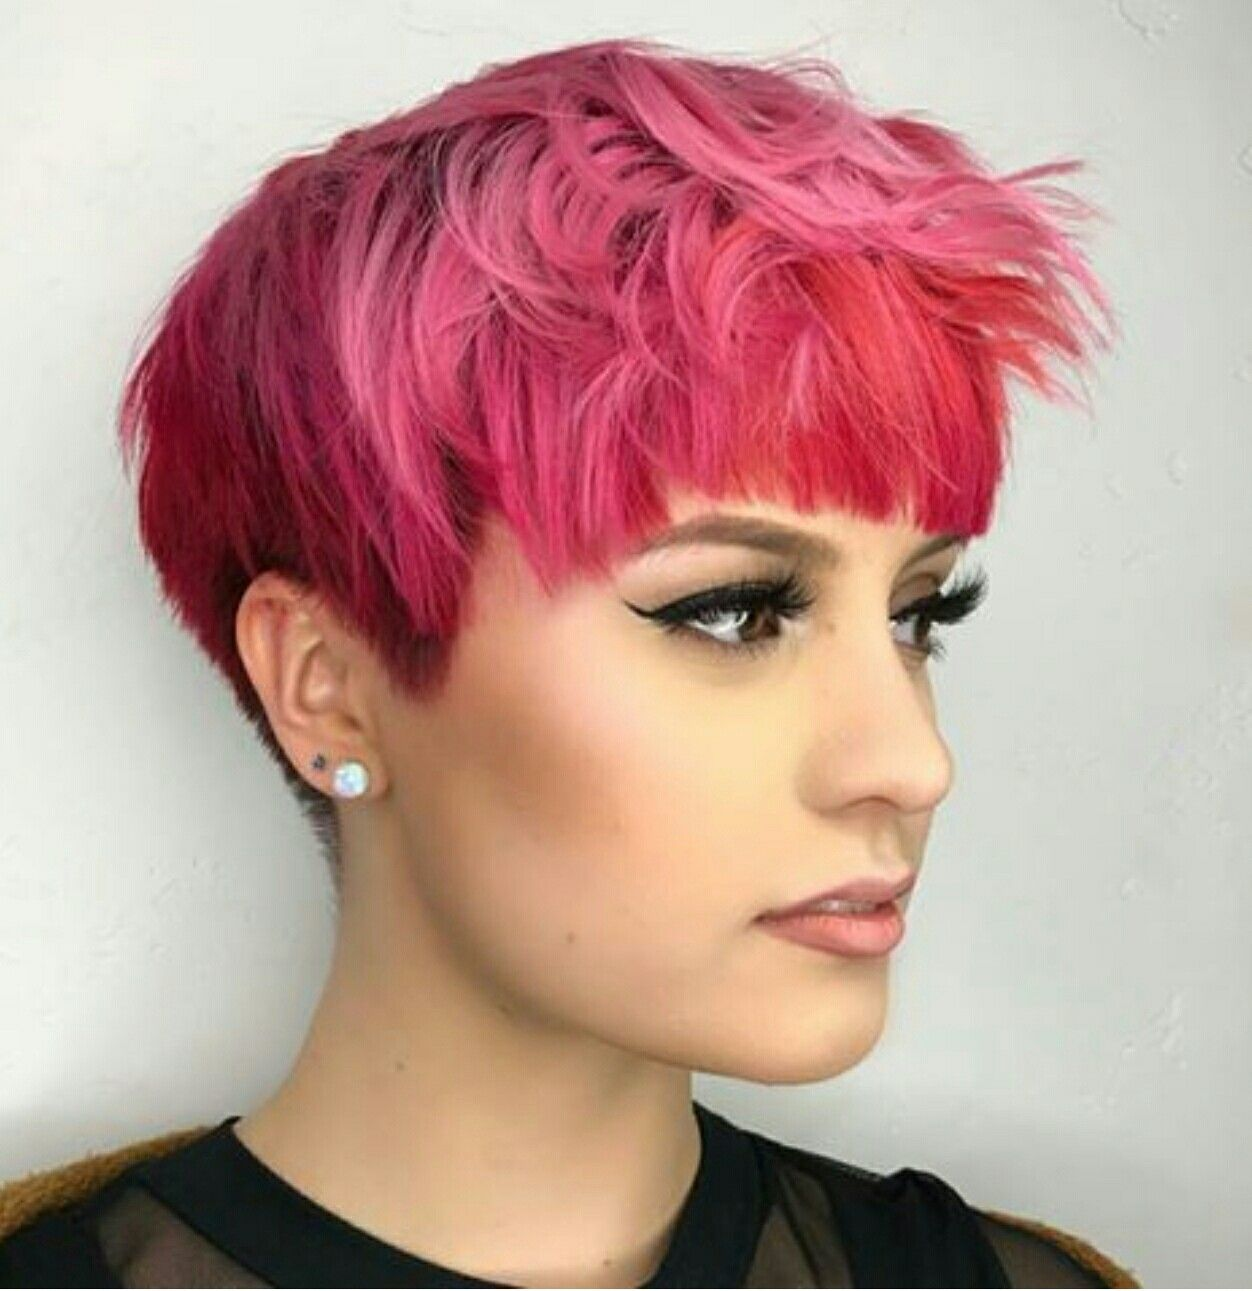 Pin by jenelle on hair pinterest pixies haircuts and hair style